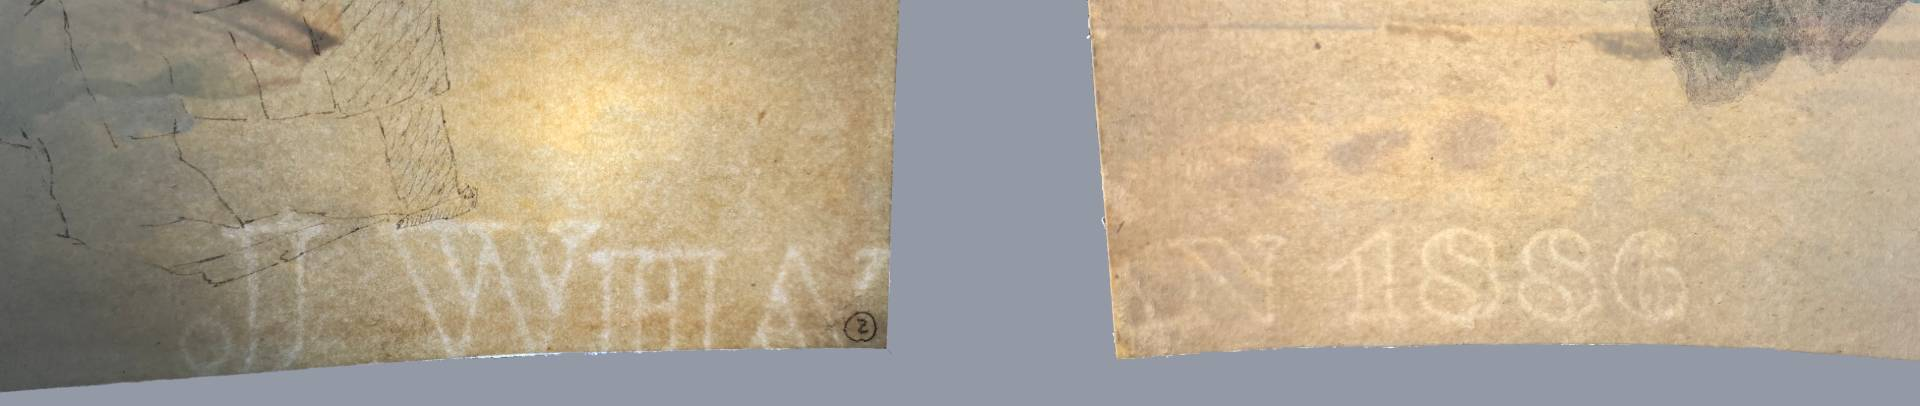 Using transmitted light to show the 'J Whatman' and '1886' watermarks that were revealed after the backing removal